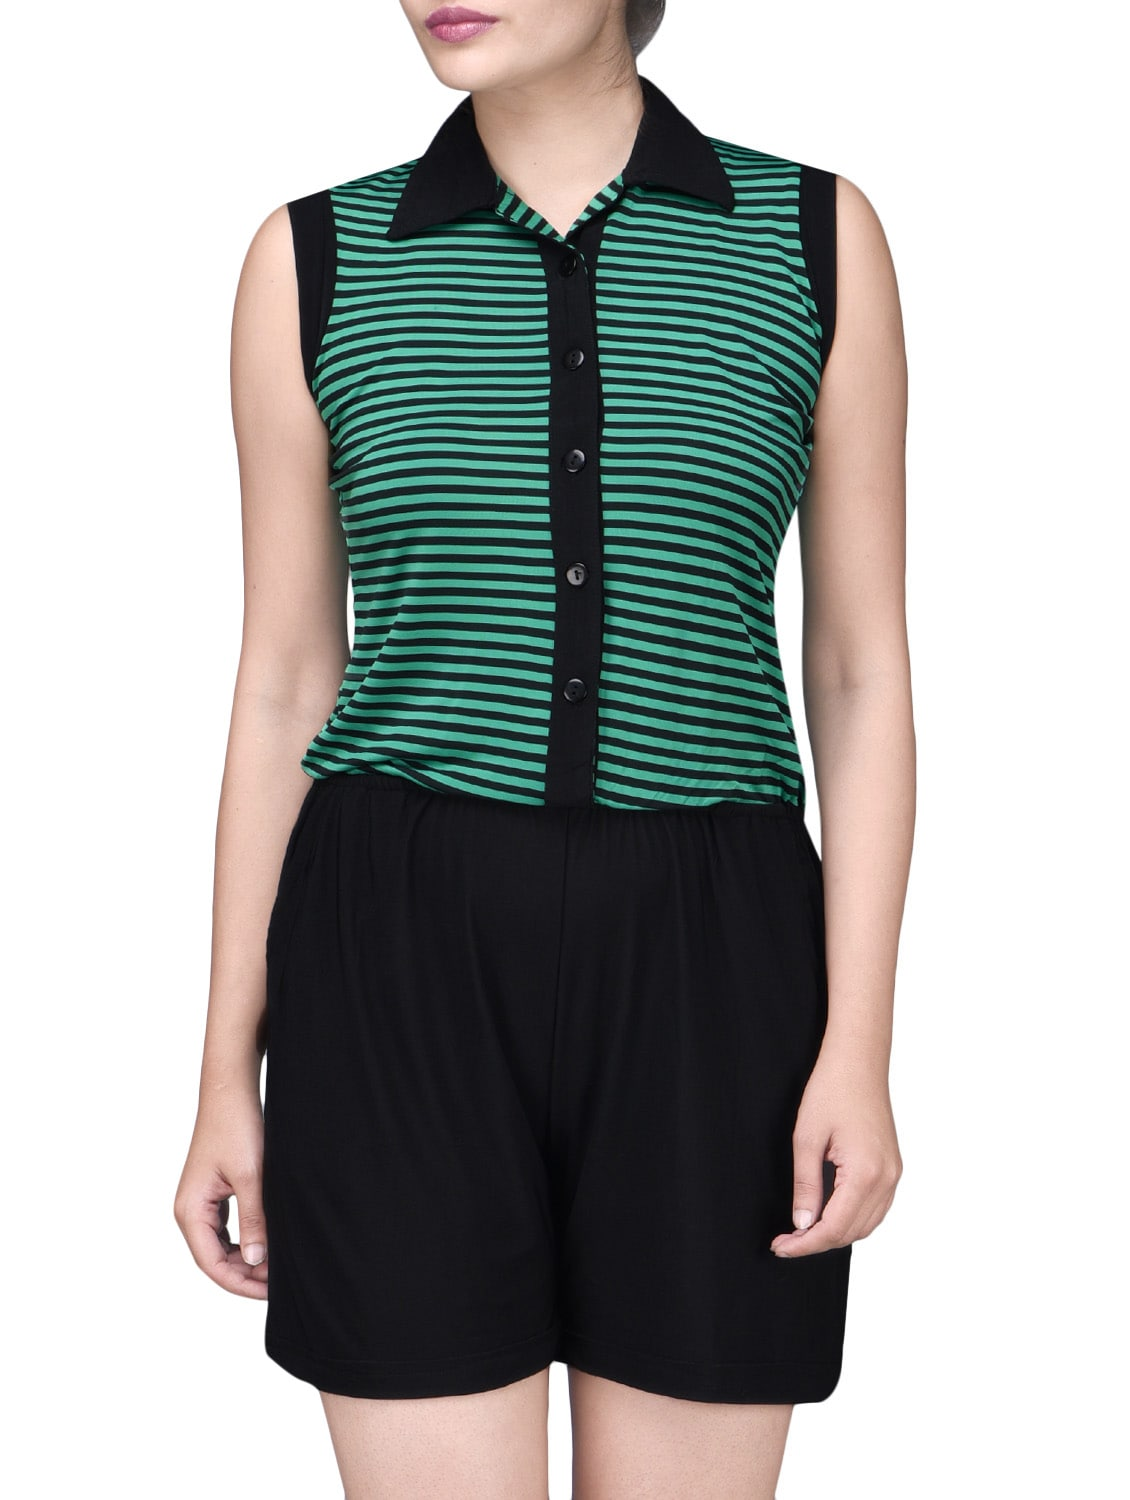 d97315aad681 ... Black and Green Polyspandex Striped Jumpsuit - 1201773 - Zoom Image - 1